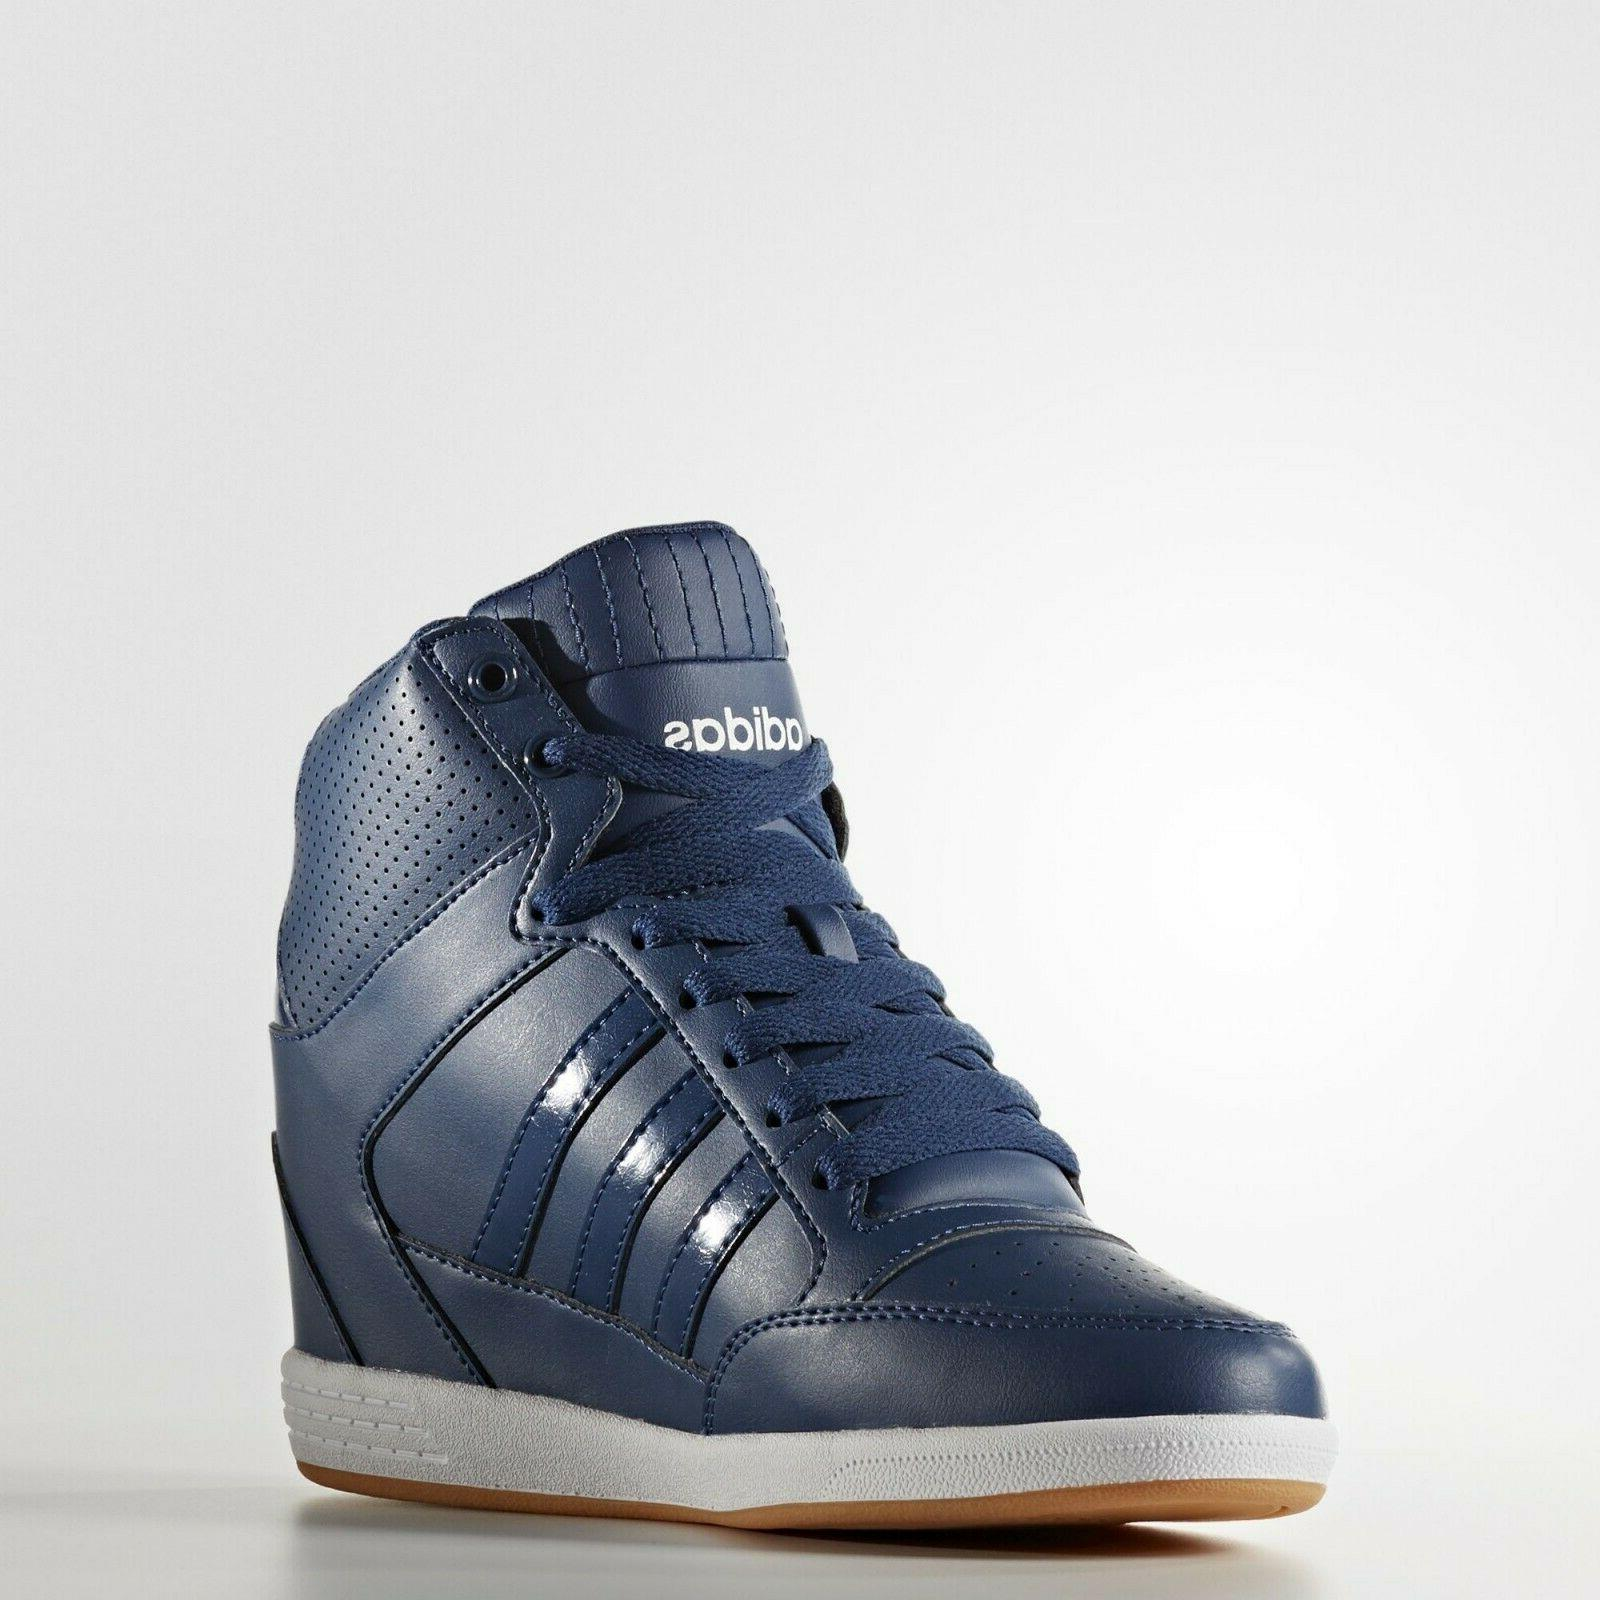 Adidas Blue Suede shoes boots sizes